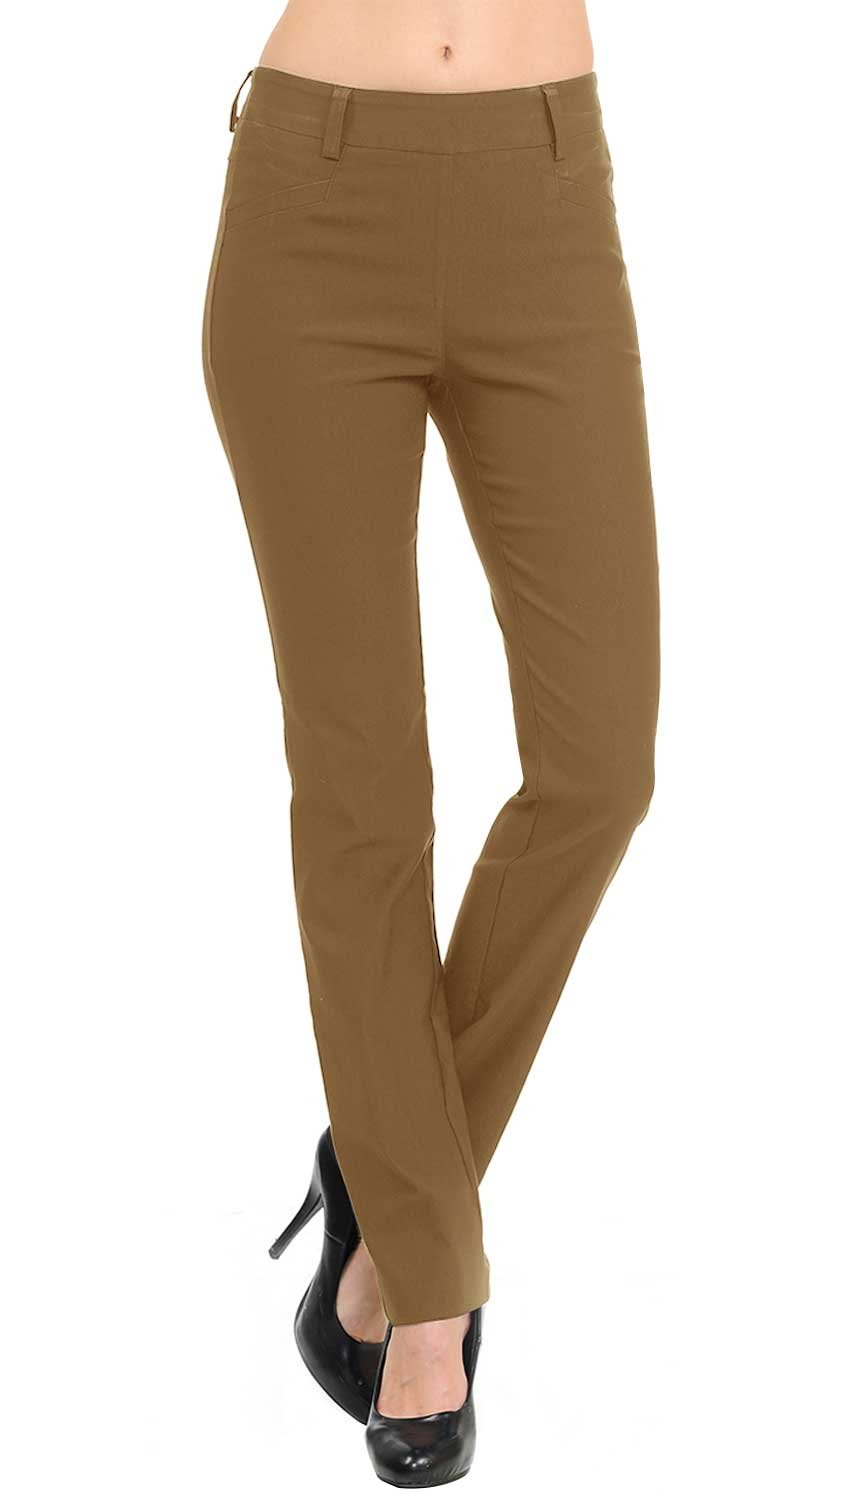 VIV Collection New Straight Fit Long Trouser Pants (Large - 30'' Inseam, Mocha)